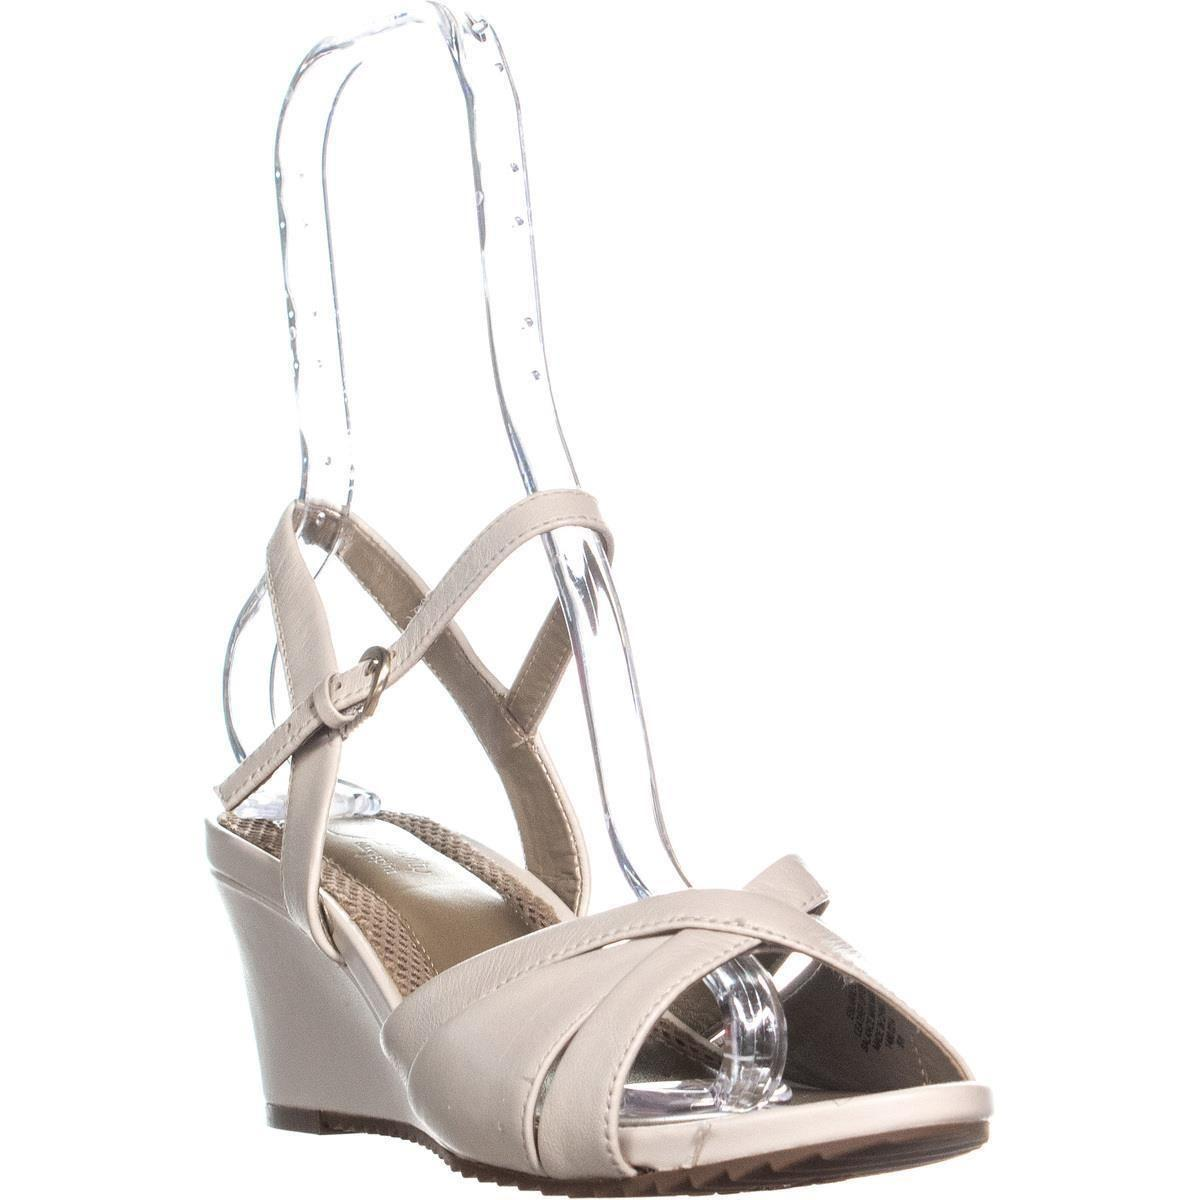 bb9a3cd5bb1 Lyst - Easy Spirit Laralee Peep Toe Ankle Strap Wedge Sandals in White